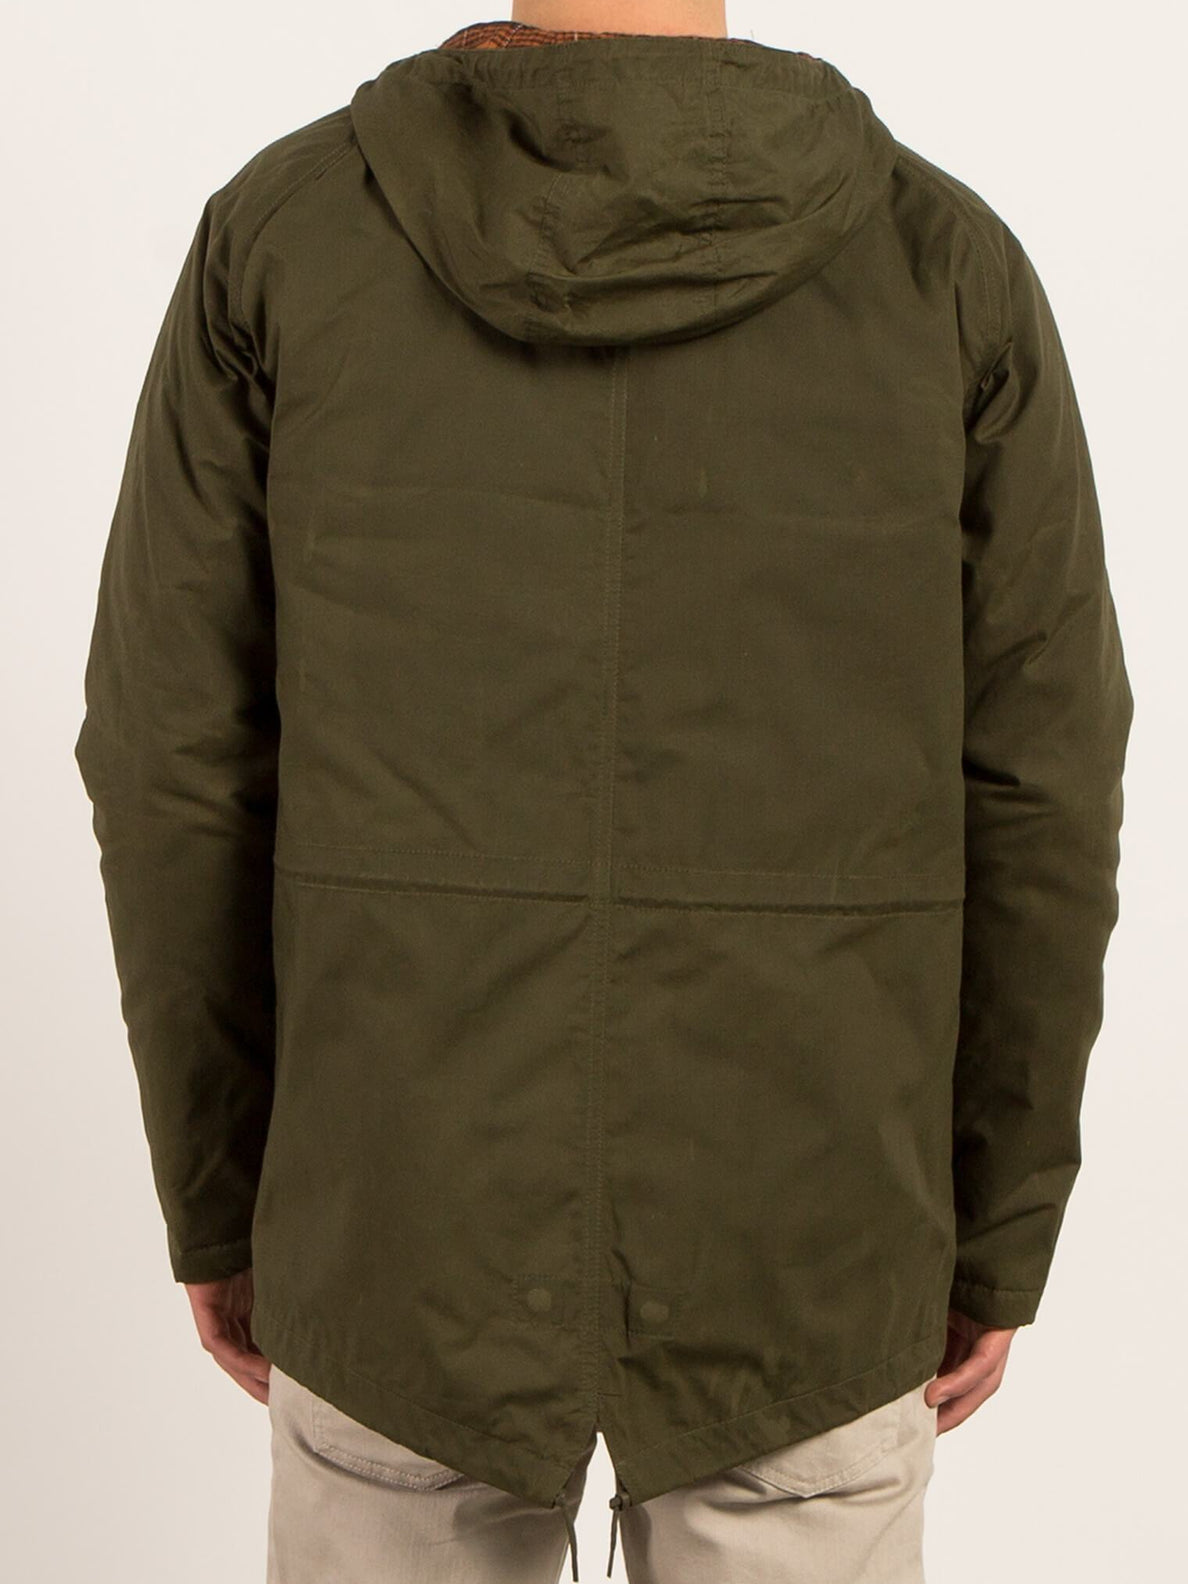 Winterparka Lane - Military